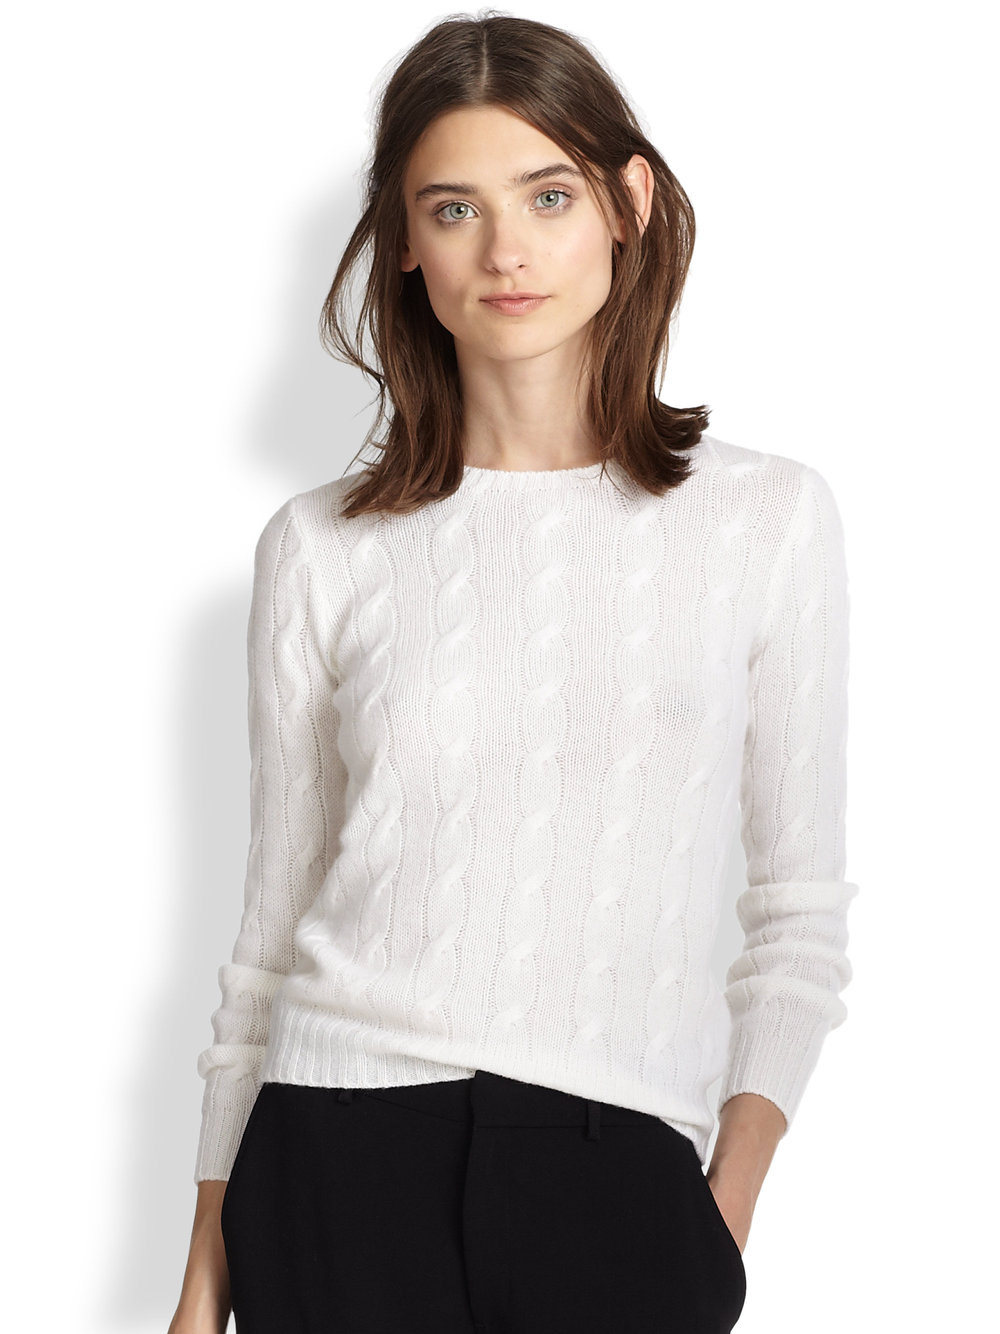 ralph-lauren-black-label-white-cable-knit-cashmere-sweater-product-1-24941170-0-489166086-normal.jpeg